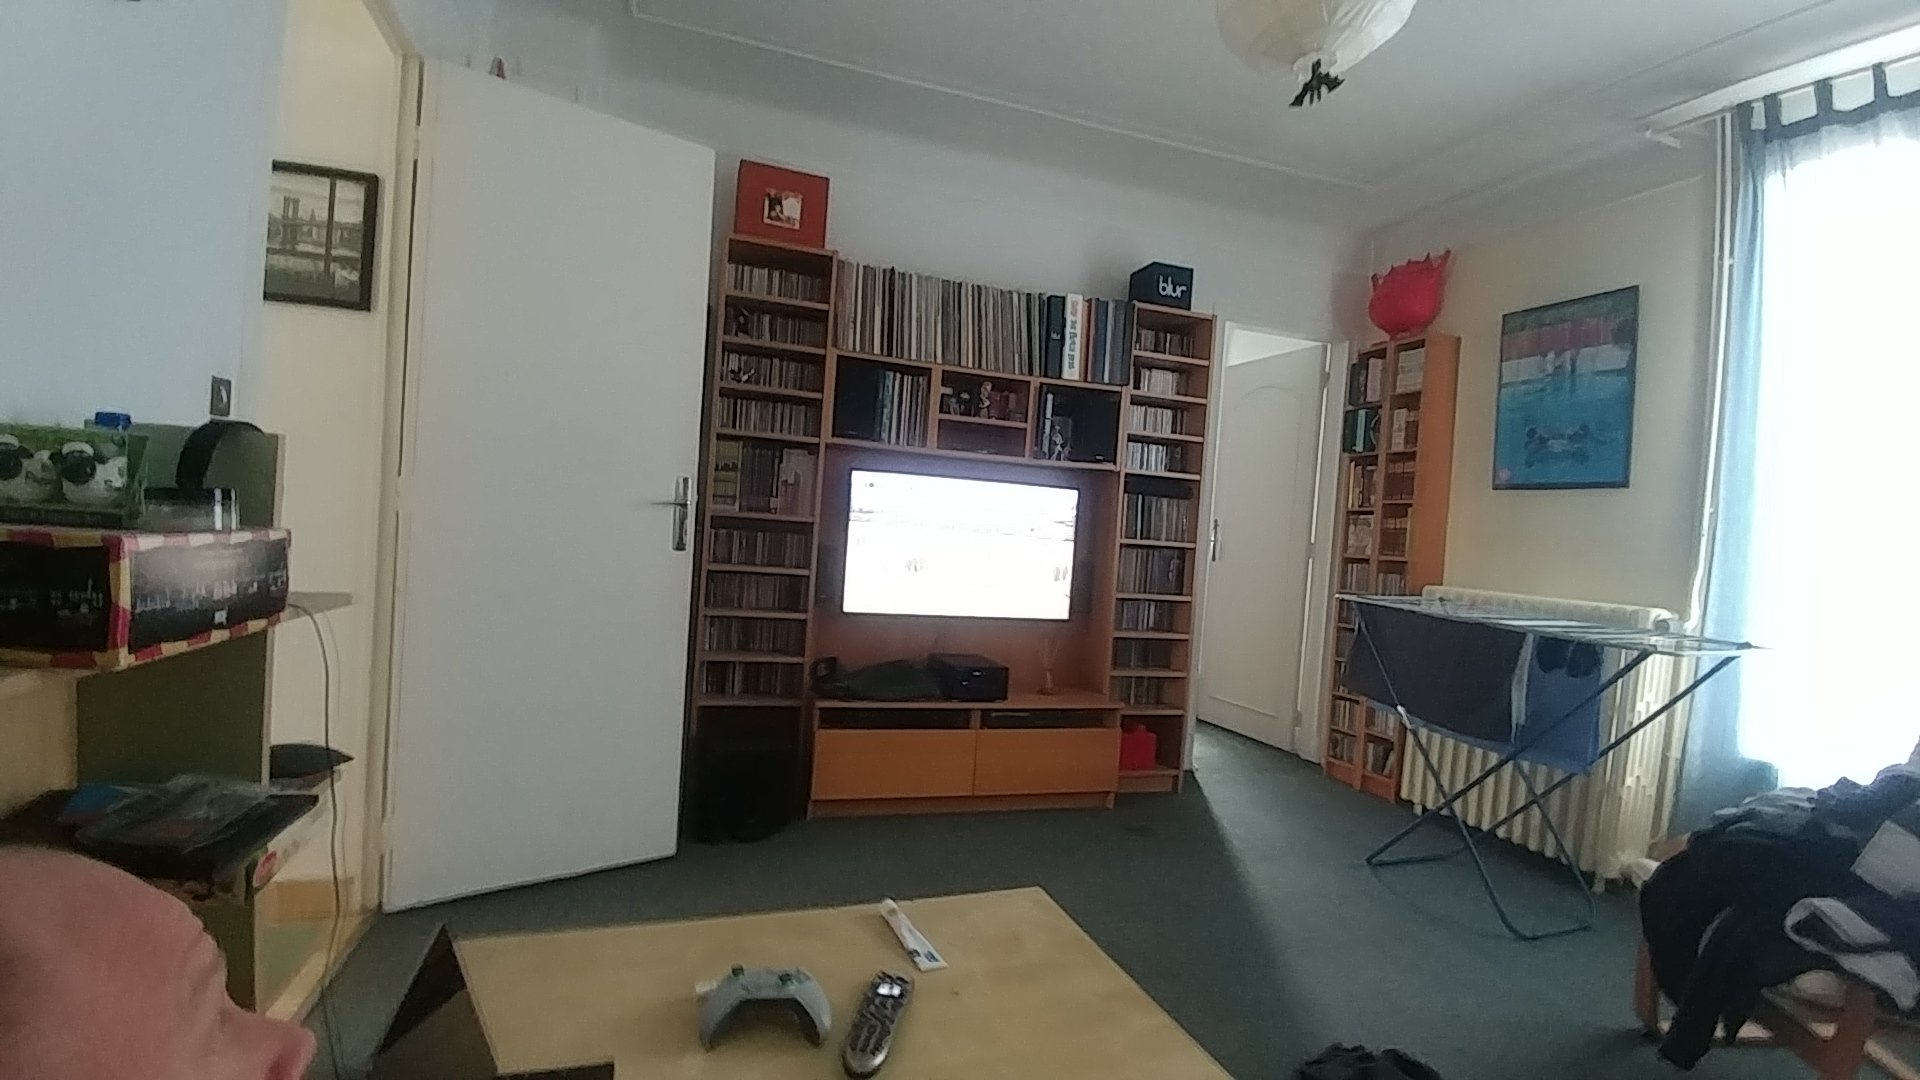 French holiday today, watching the games from the couch #ebuc2019 https://t.co/urSEbSSHcK <a href='https://twitter.com/M_Rochette/status/1126038045134872577/photo/1' target='_blank'>See original &raquo;</a>